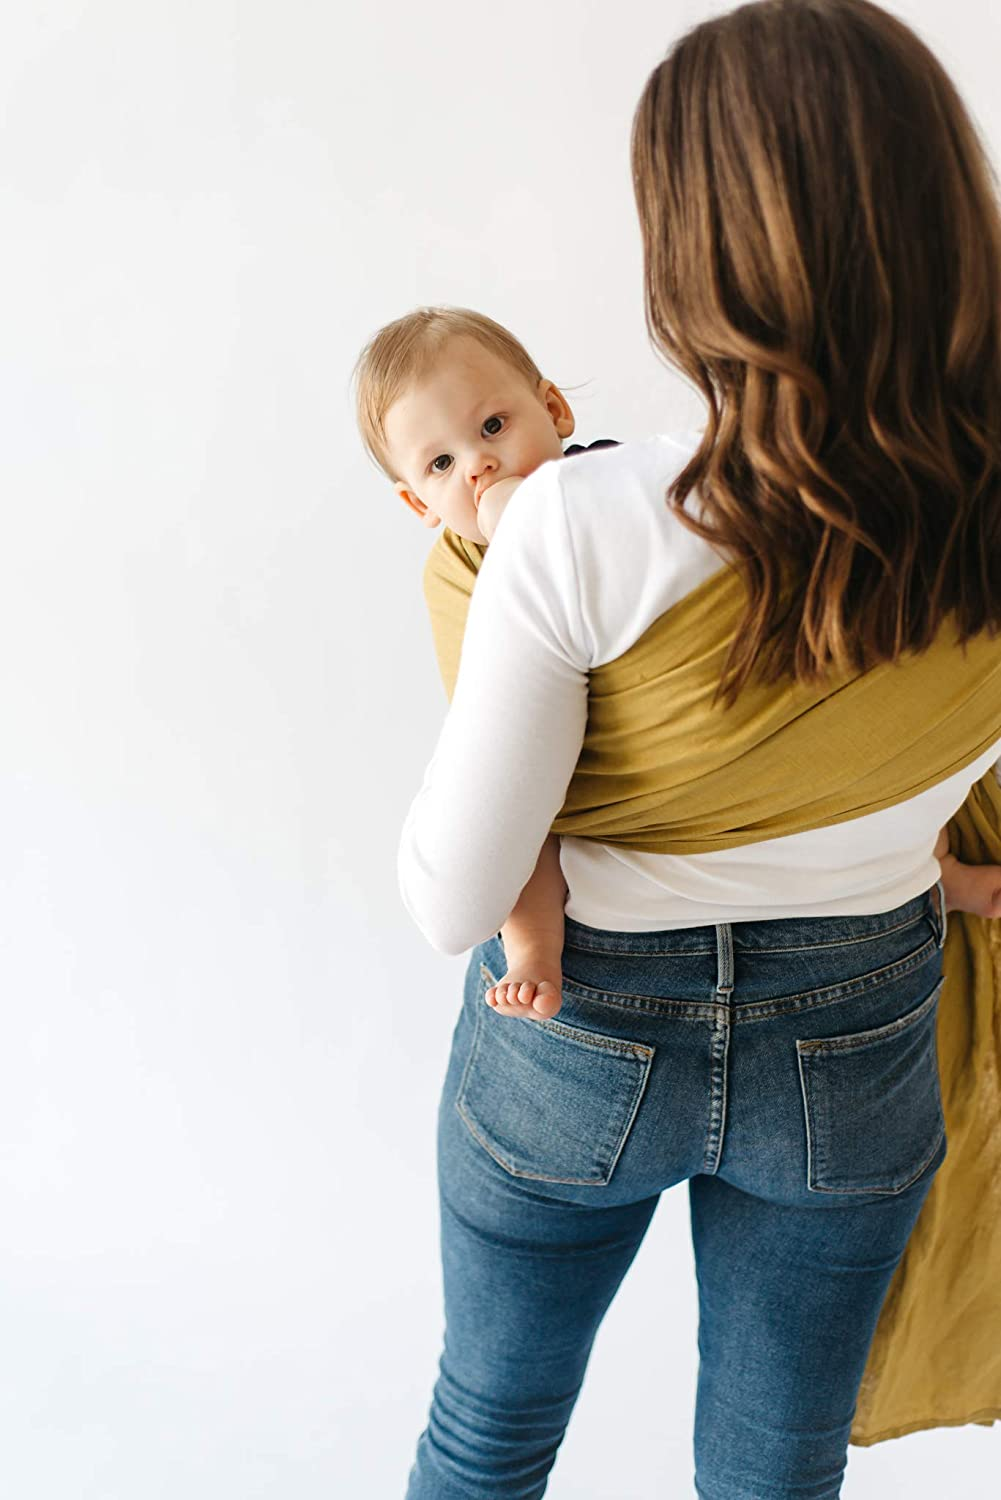 100/% Pre-Washed Linen 80 Inches Long Kyte BABY Ring Slings Holds Babies from 8 to 35lbs Extremely Comfortable with Full Support Evergreen Rose Gold Rings